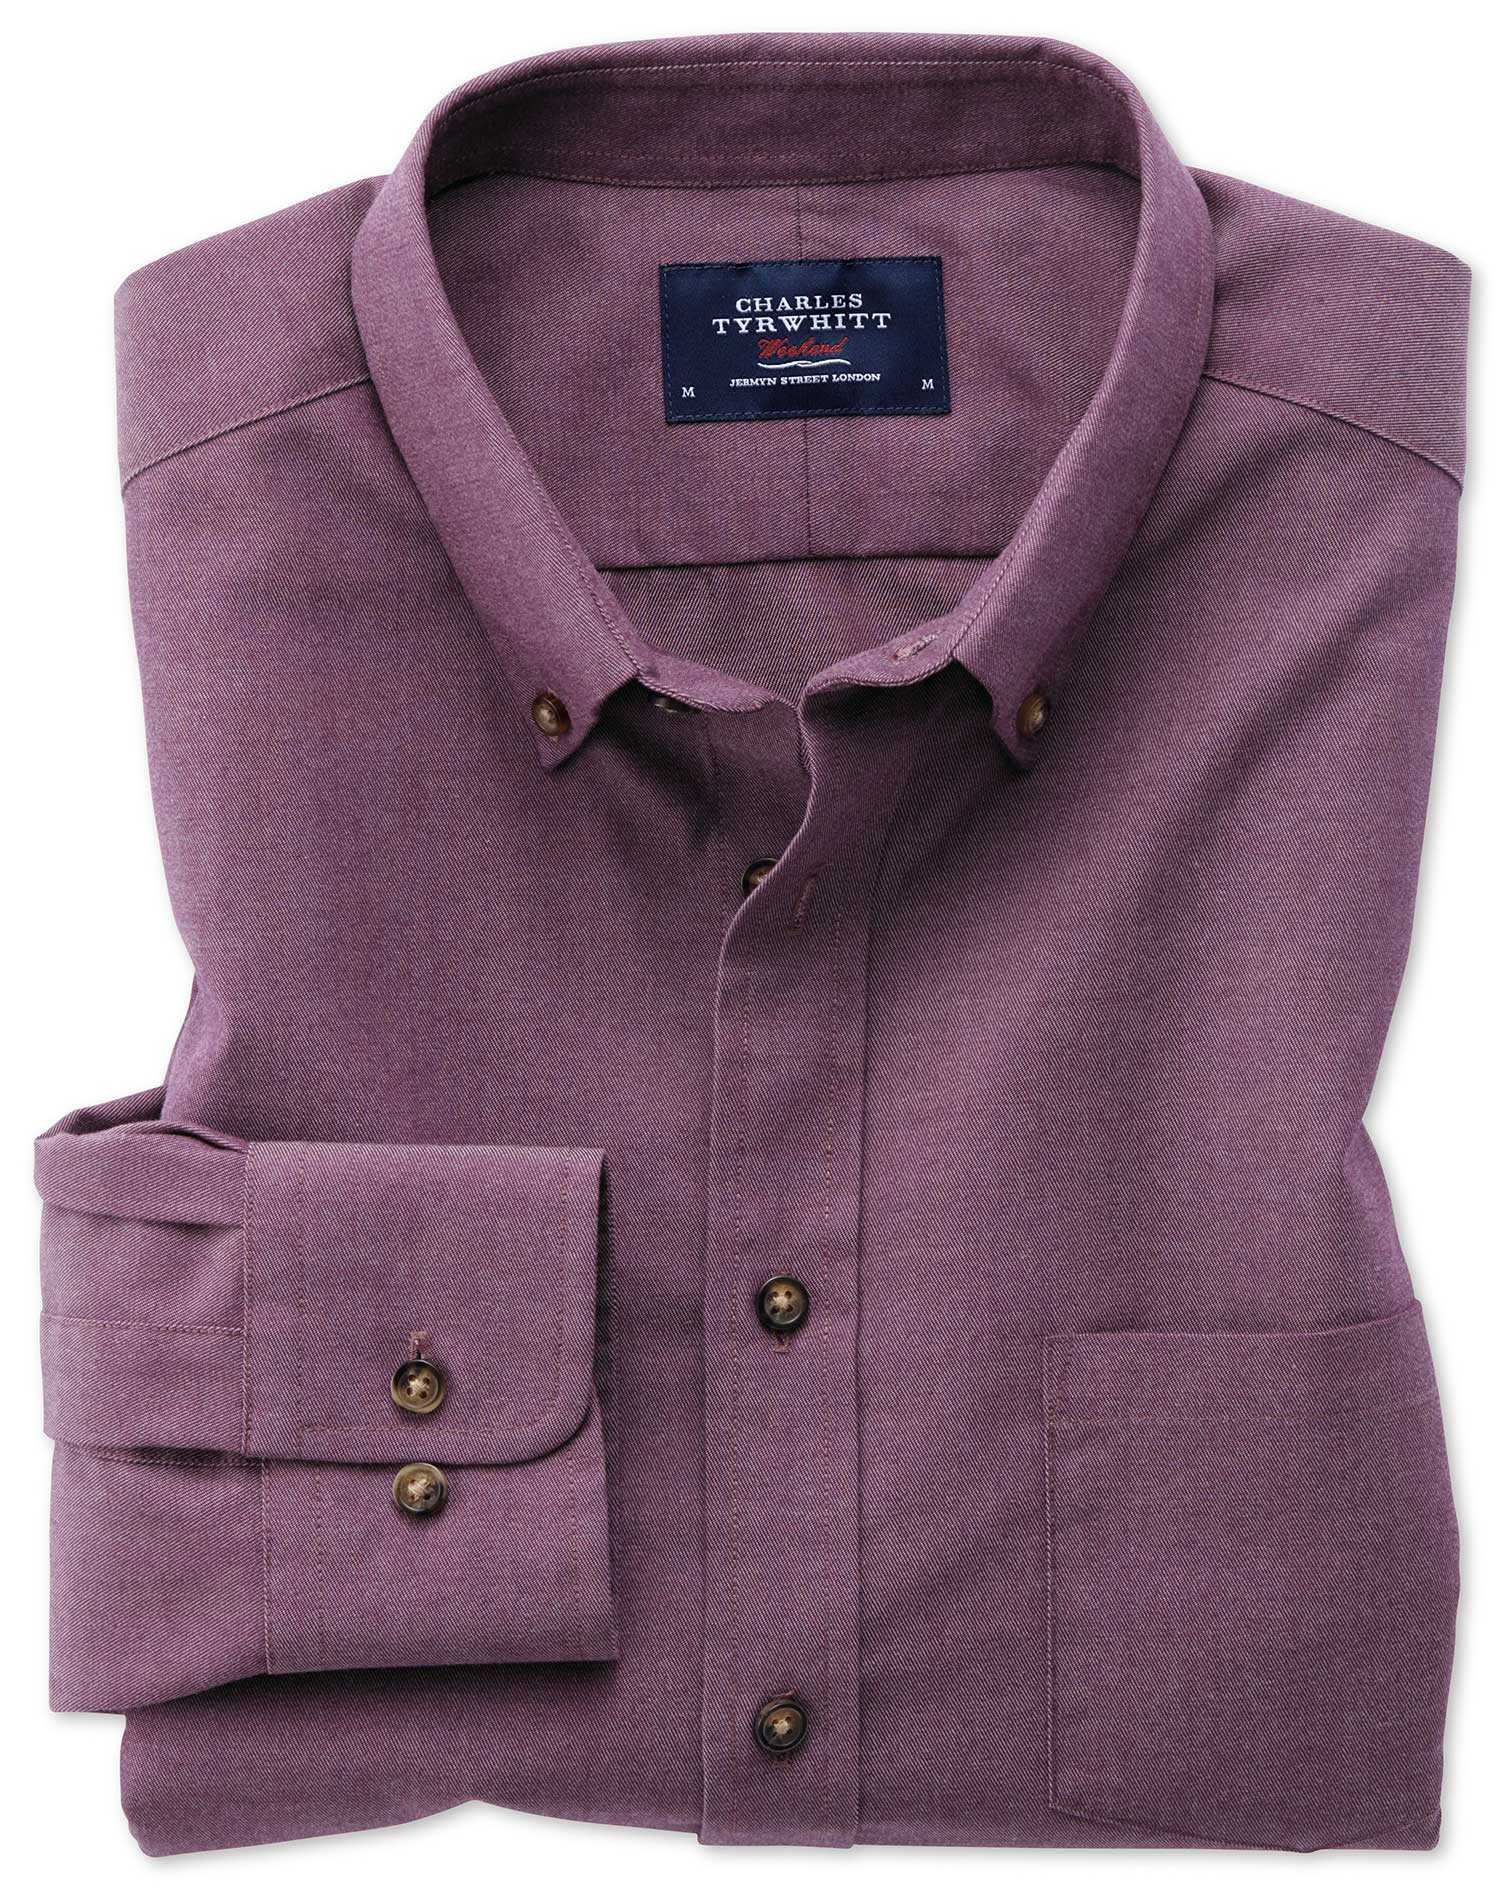 Slim Fit Button-Down Non-Iron Twill Purple Cotton Shirt Single Cuff Size Large by Charles Tyrwhitt